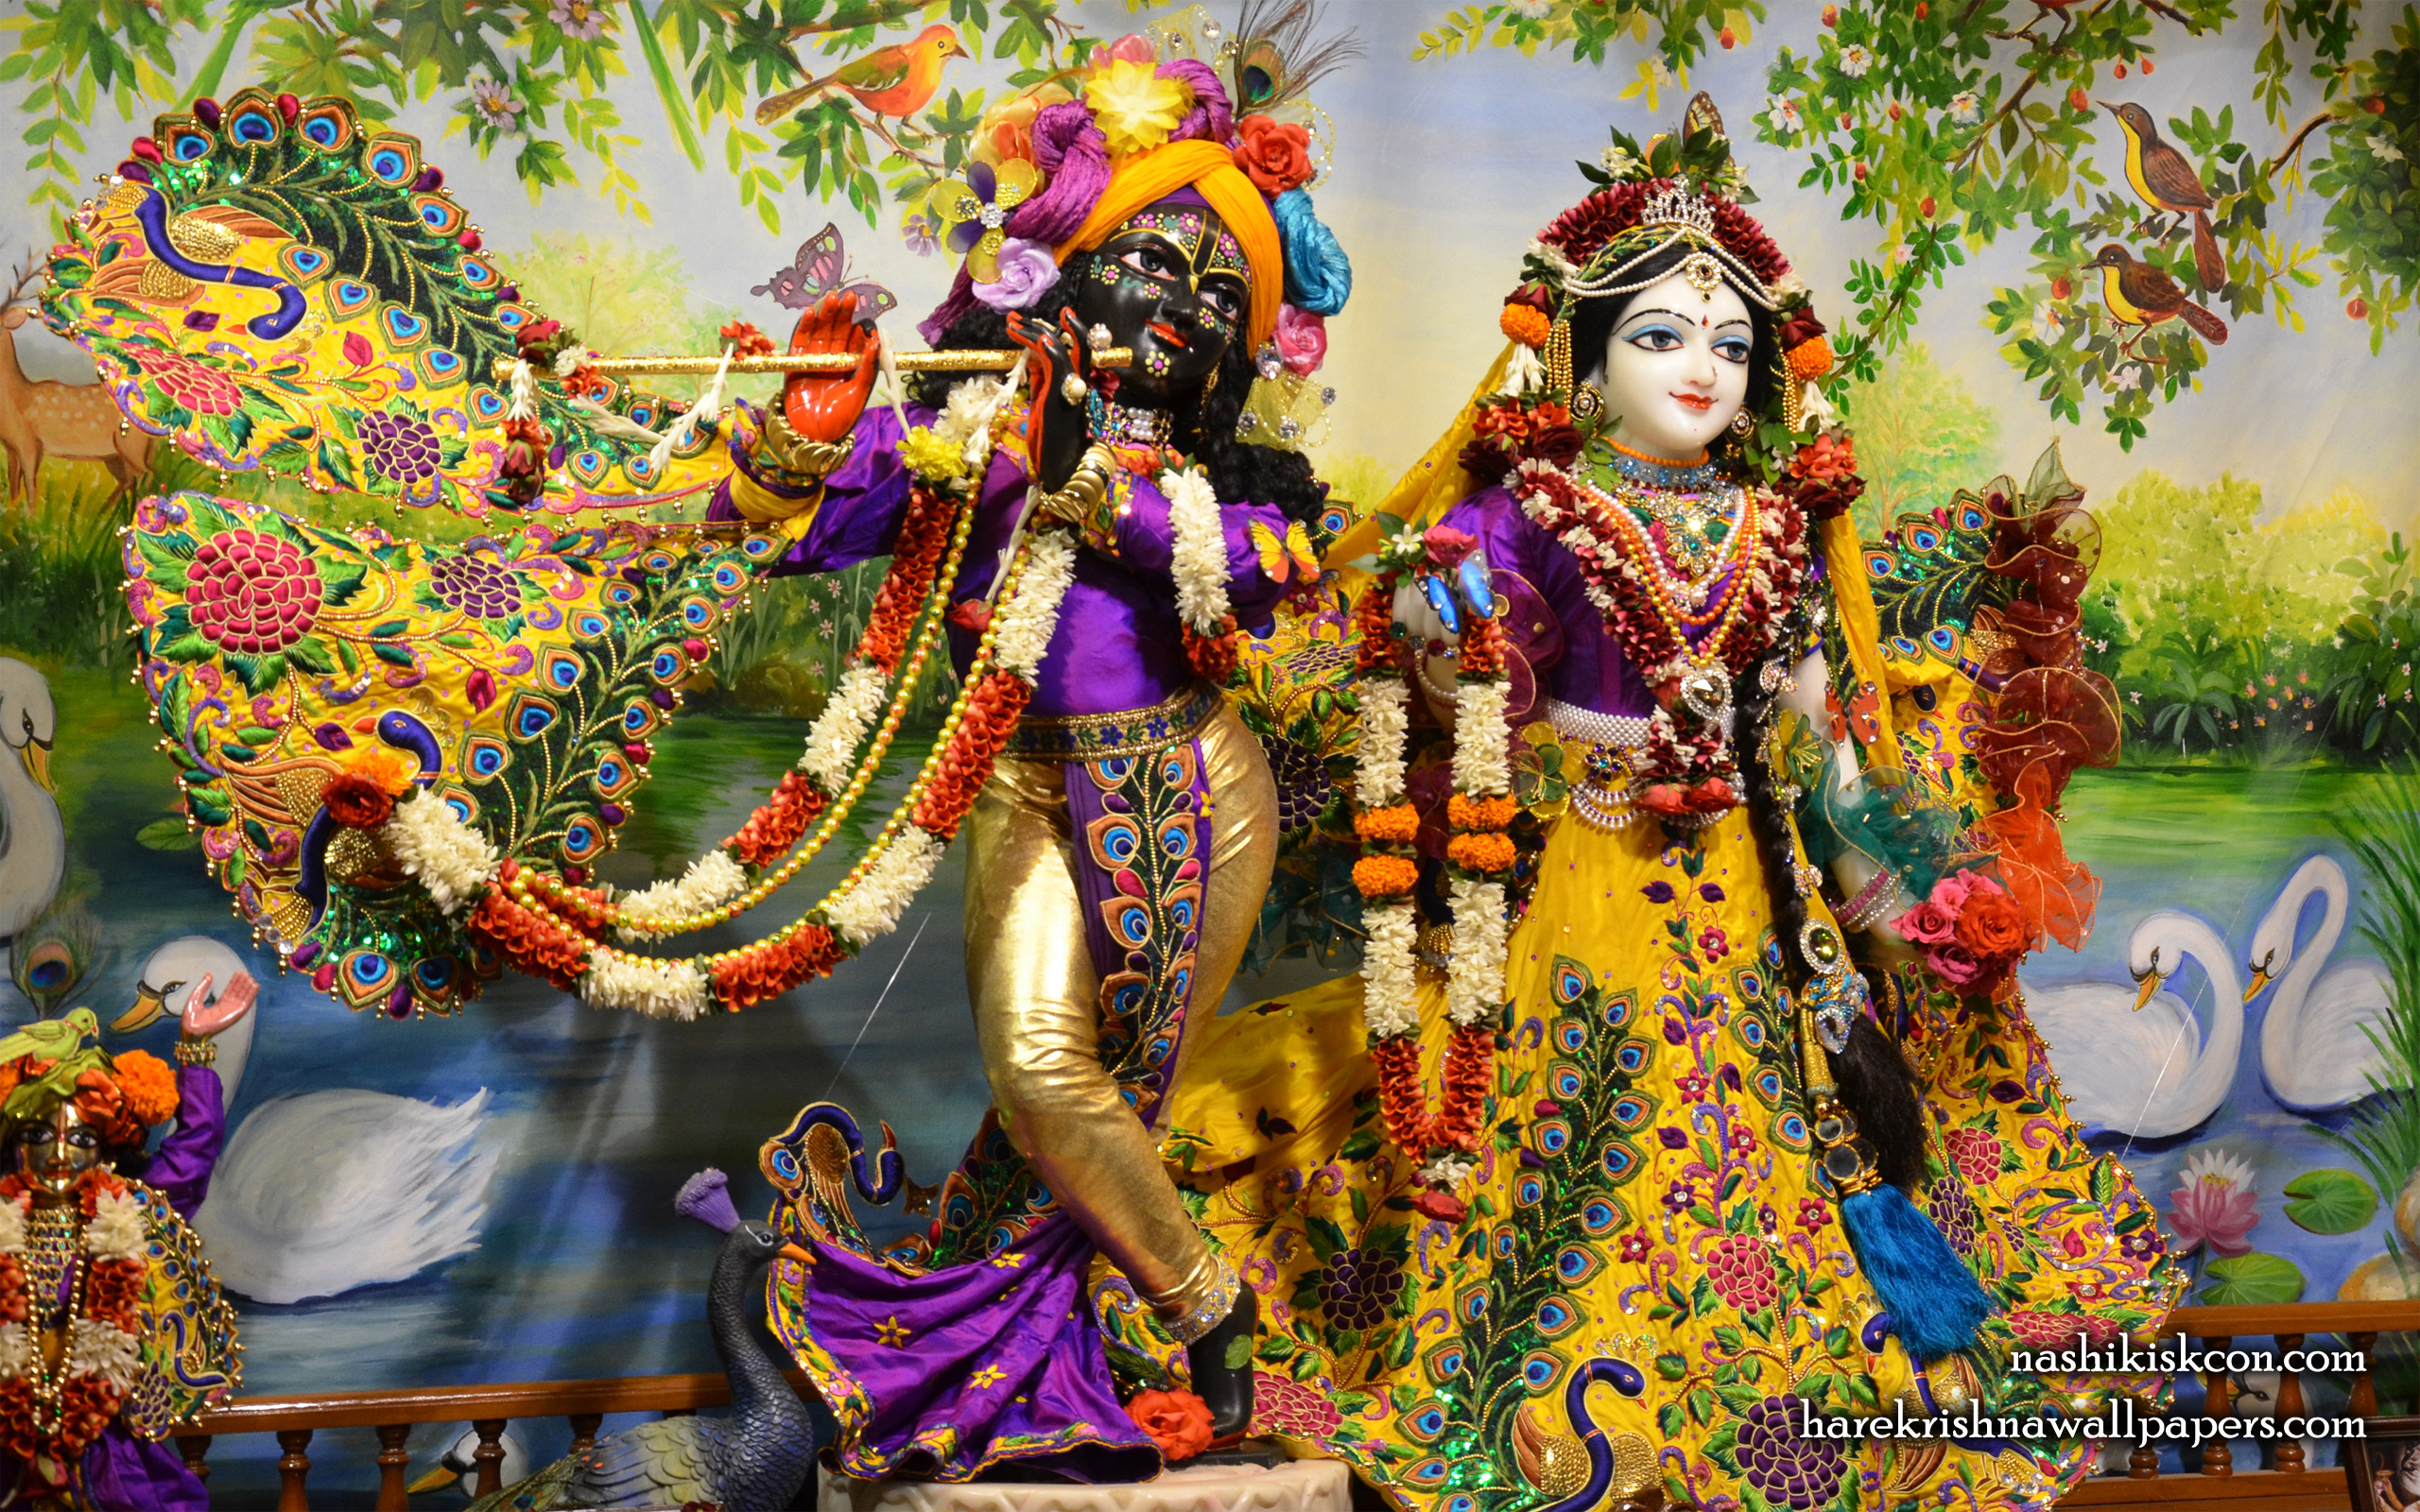 Sri Sri Radha Madan Gopal Wallpaper (001) Size 2560x1600 Download